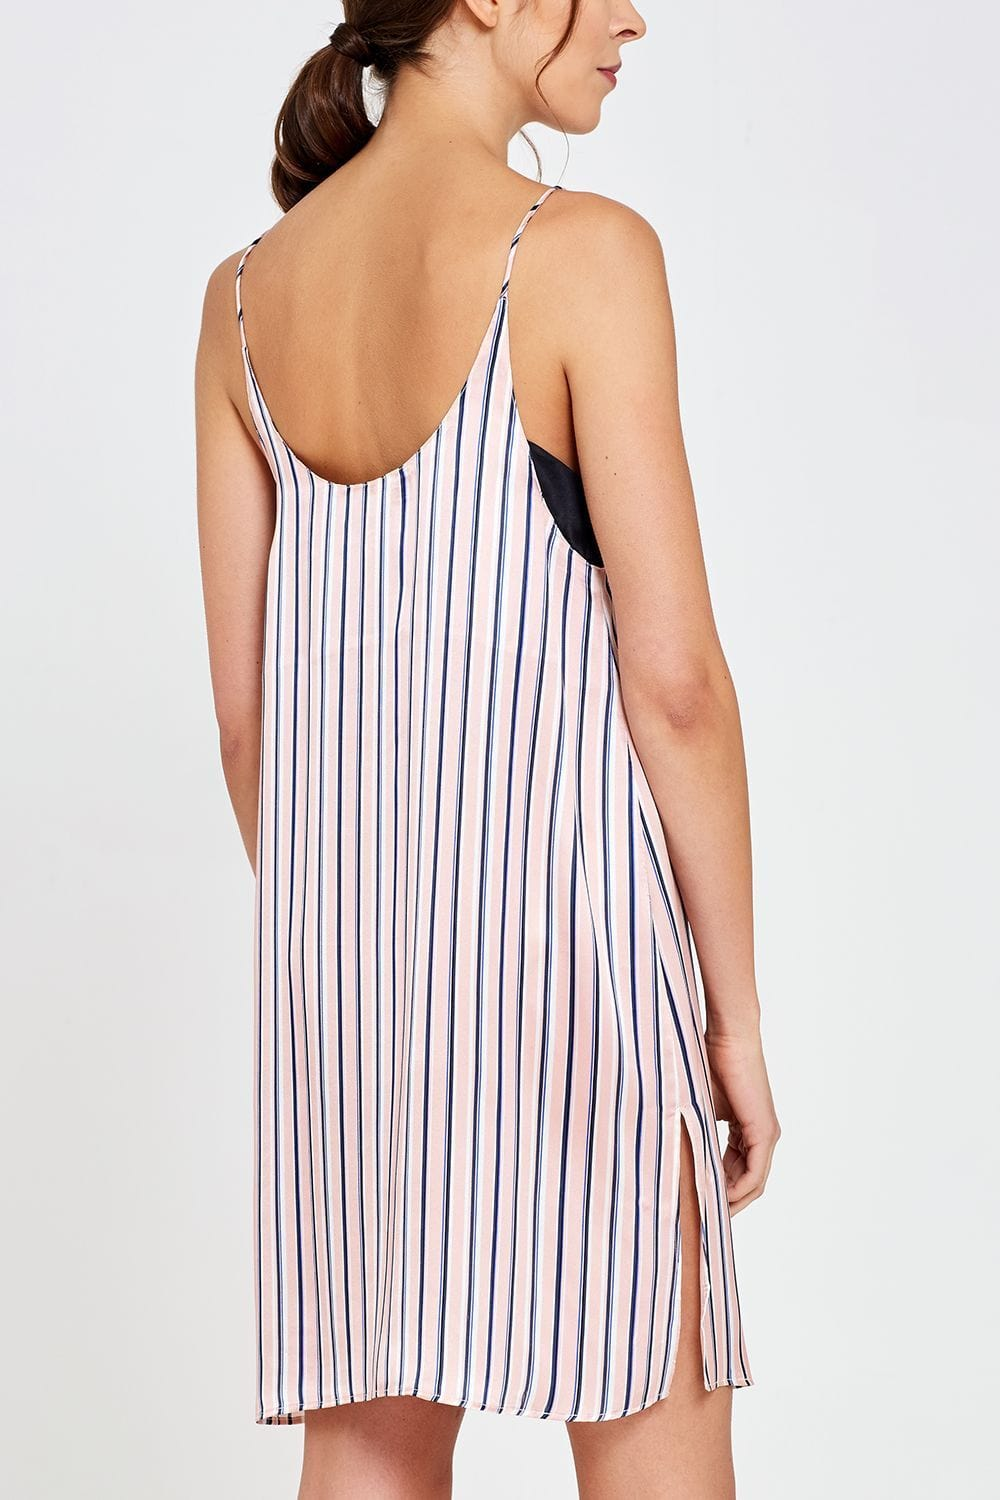 Adeline Shorty Nightdress Thin Stripe Back